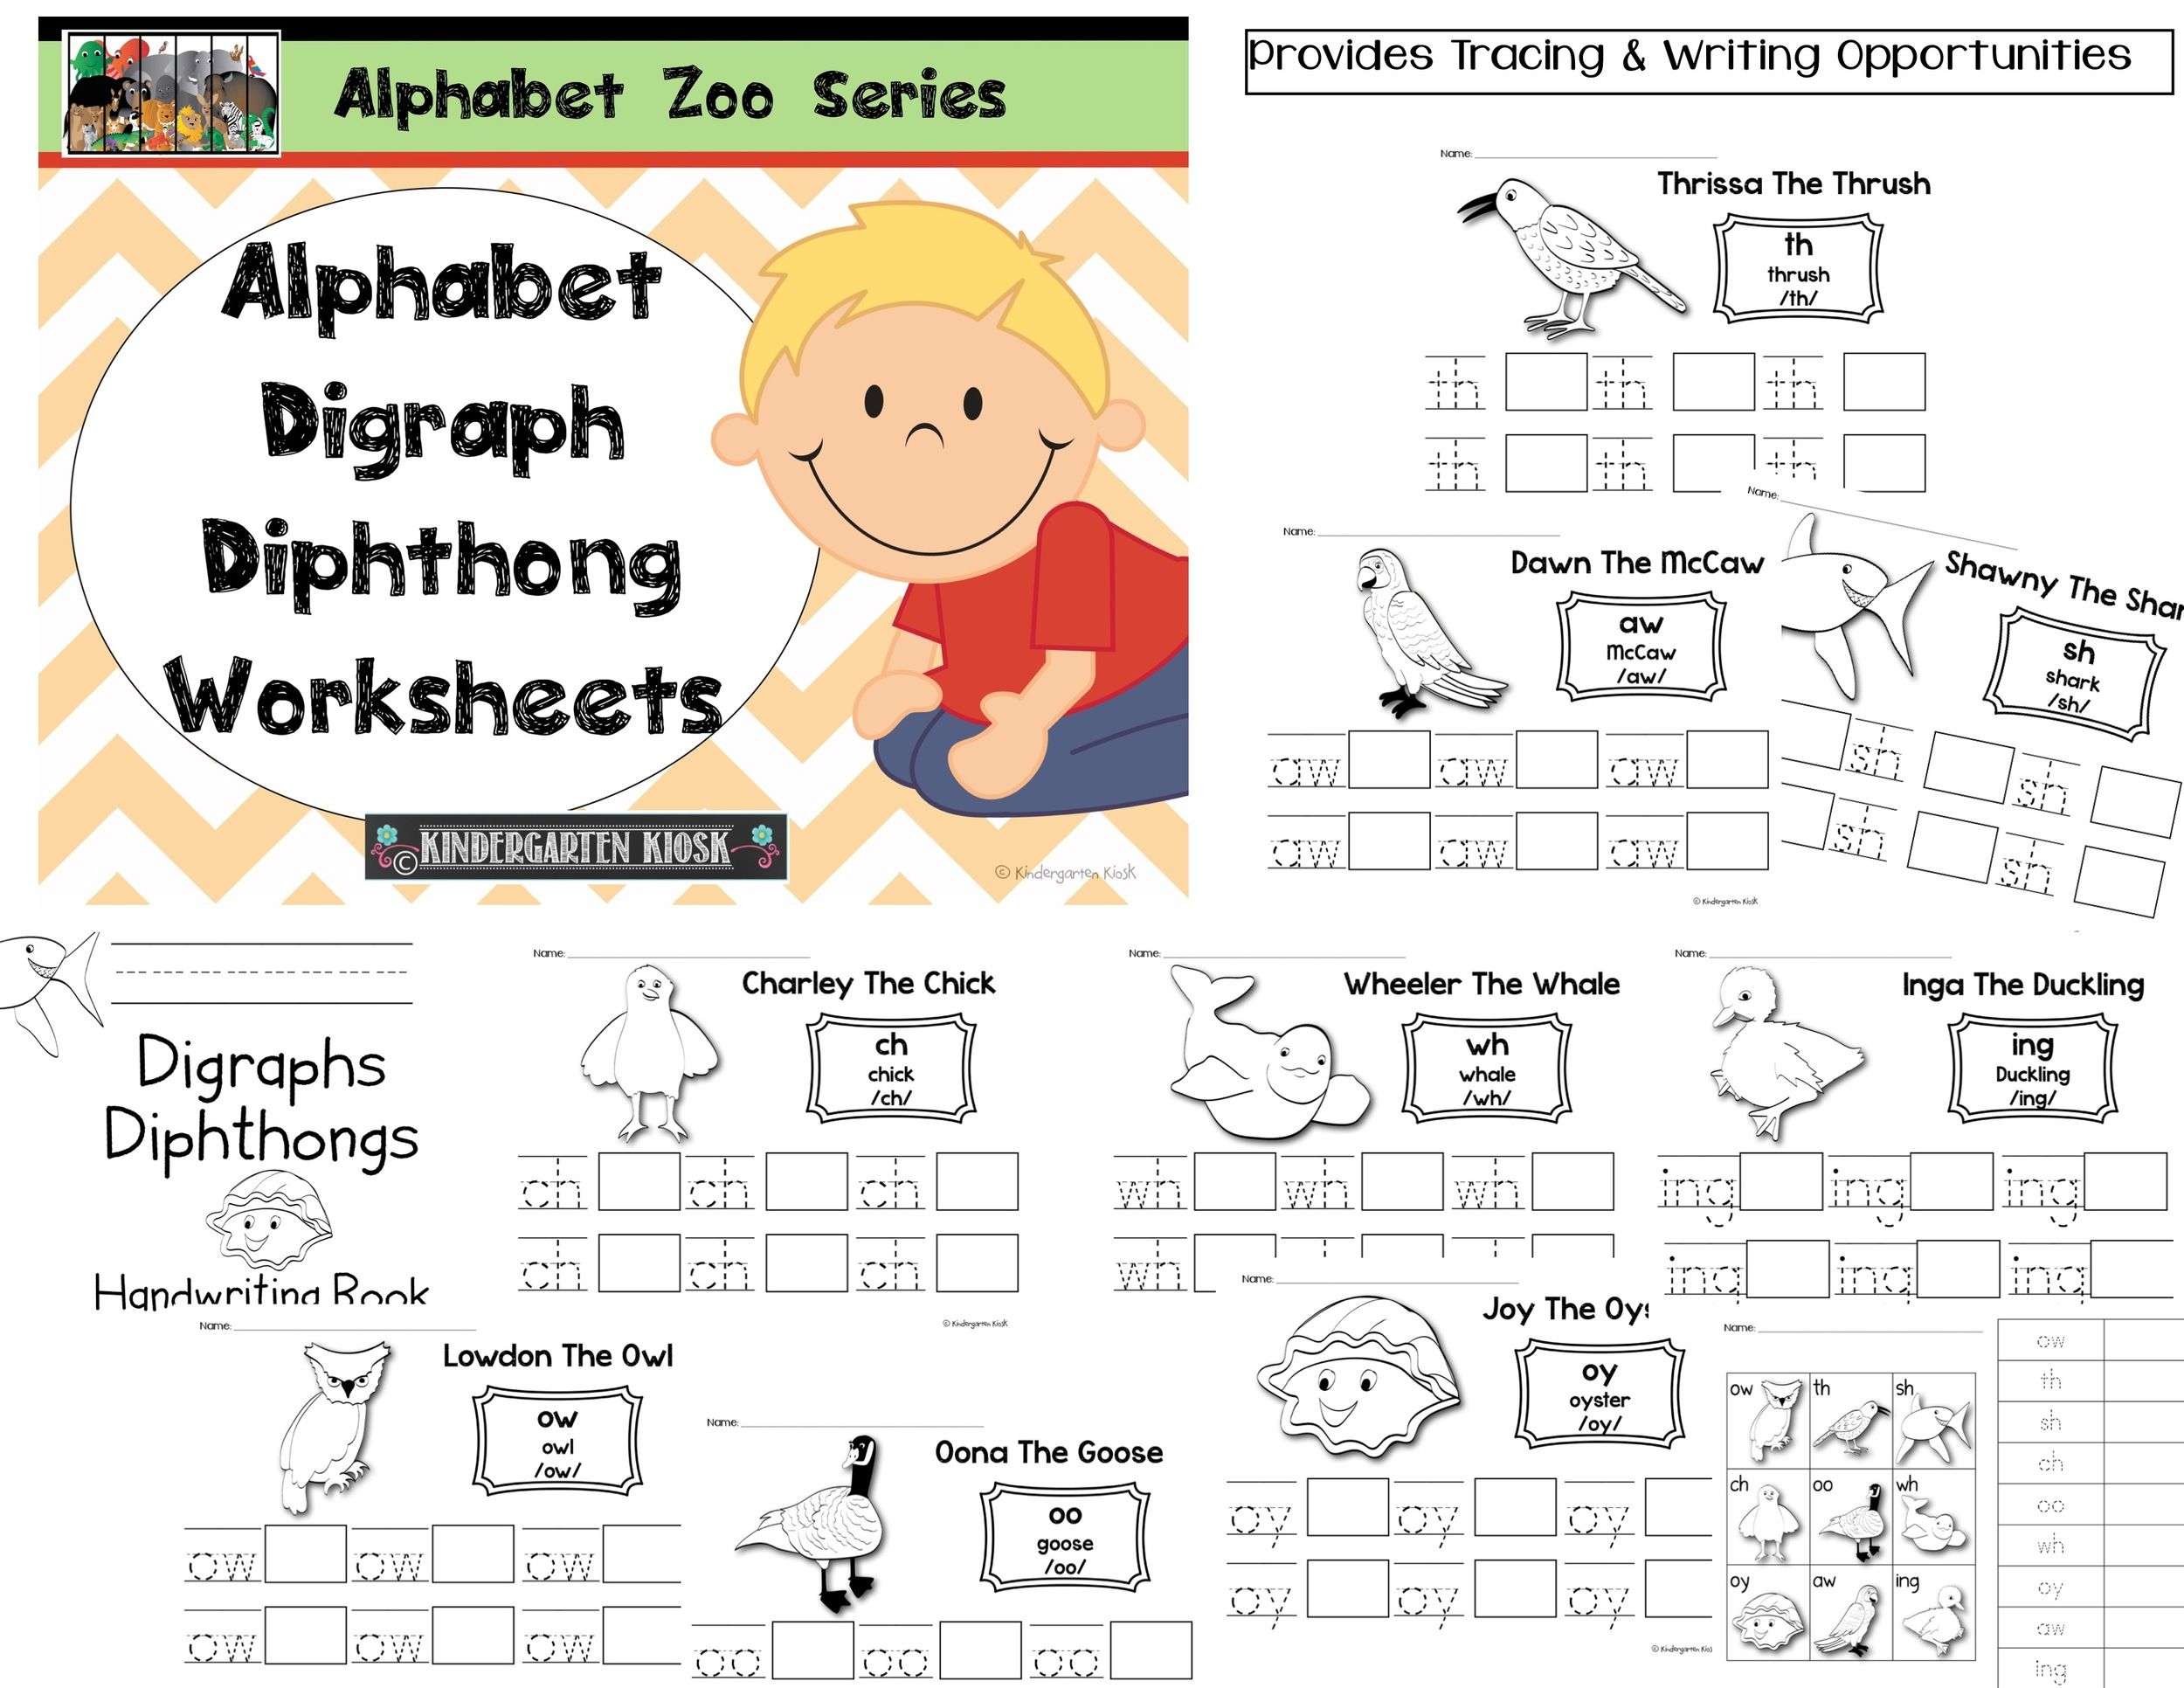 Worksheets Diphthong Worksheets alphabet zoo digraphdiphthong handwriting worksheets worksheets